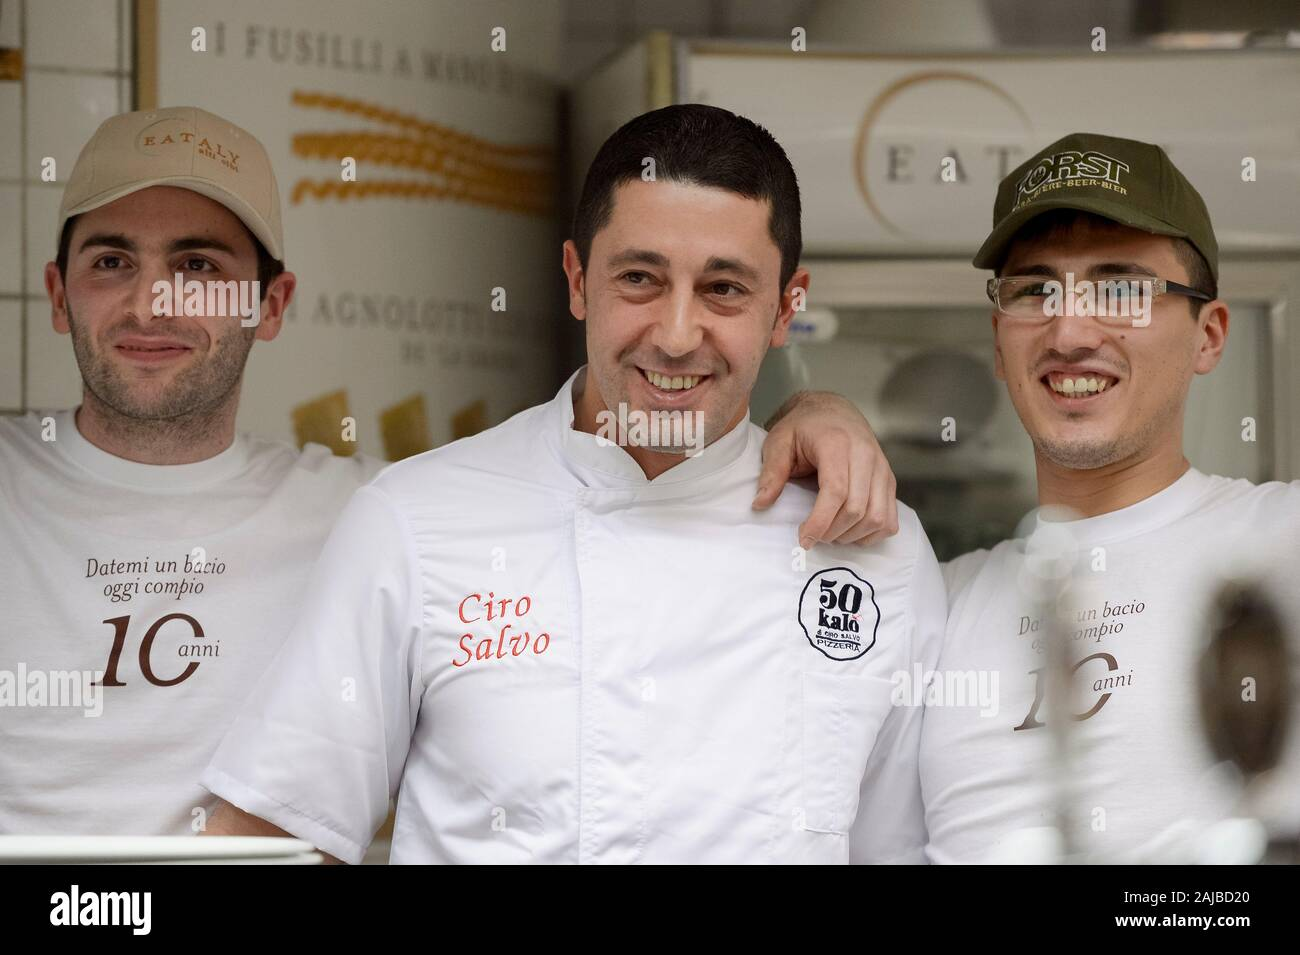 Turin, Italy - 27 January, 2017: The winning awards pizza chef Ciro Salvo (center) smiles during the celebration for Eataly 10th anniversay. Eataly is the largest Italian marketplace in the world. Credit: Nicolò Campo/Alamy Live News Stock Photo